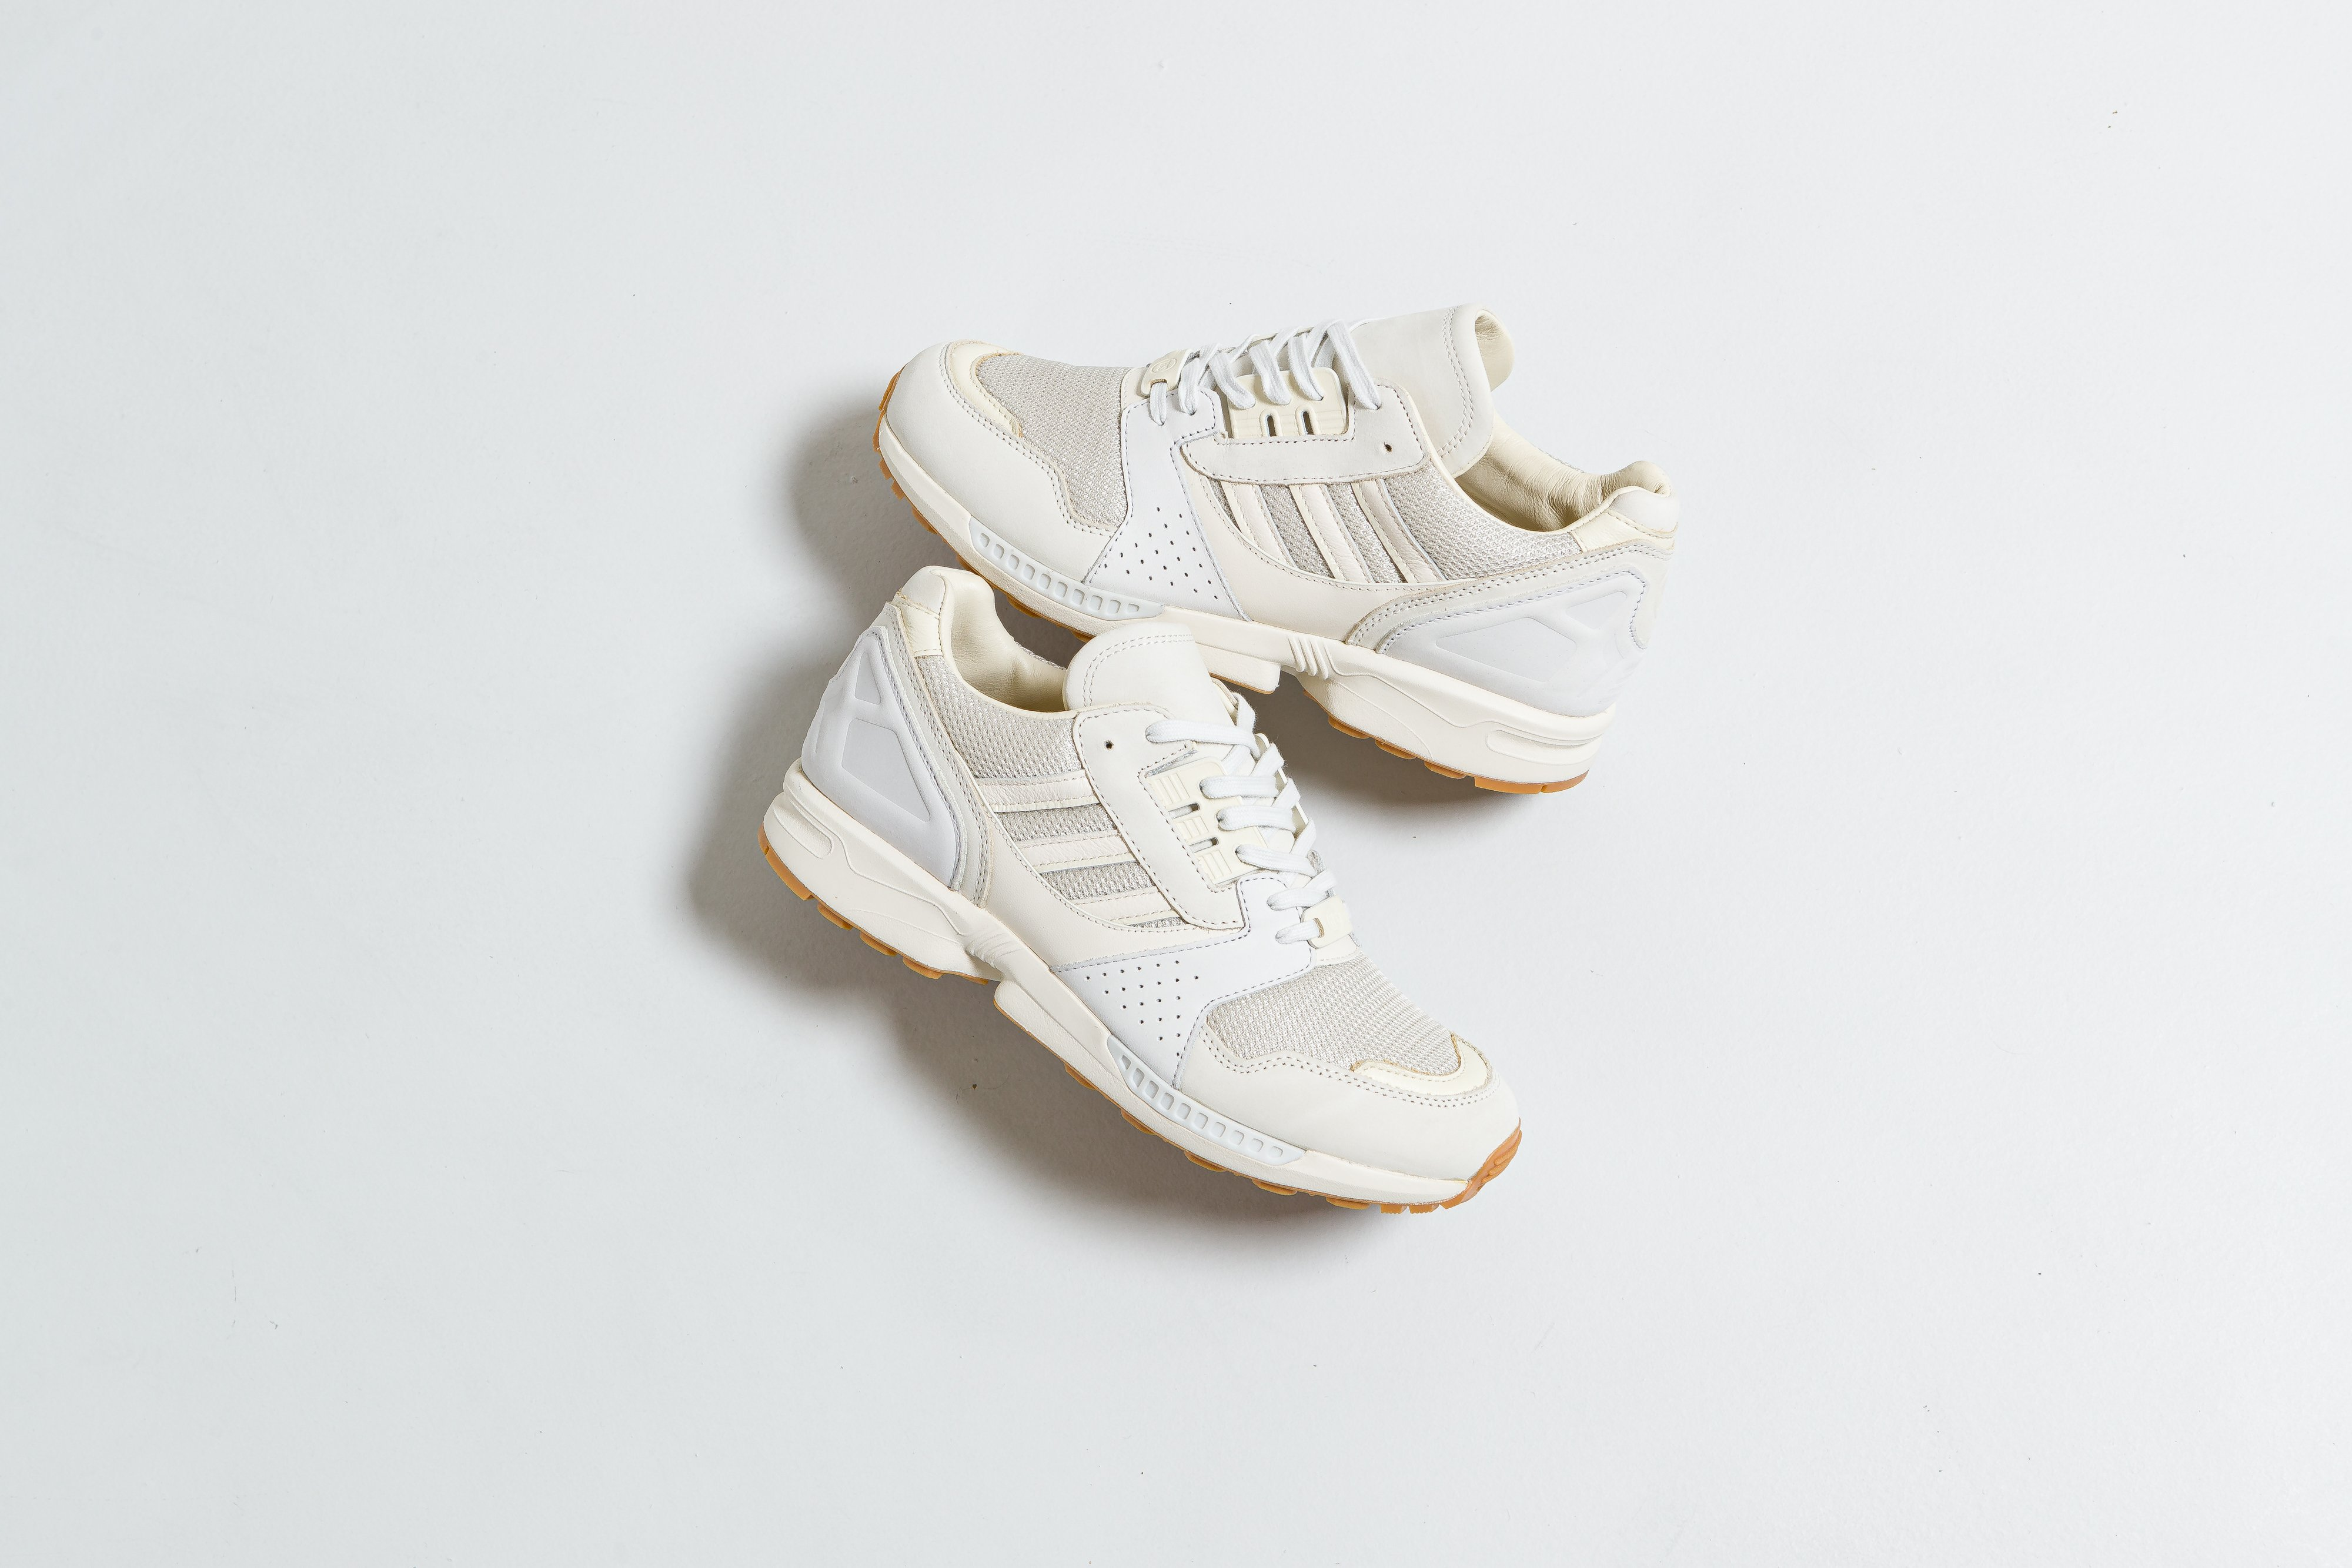 Up There Store - adidas Originals A-ZX High Snobiety Q is for Qualitat (Quality)